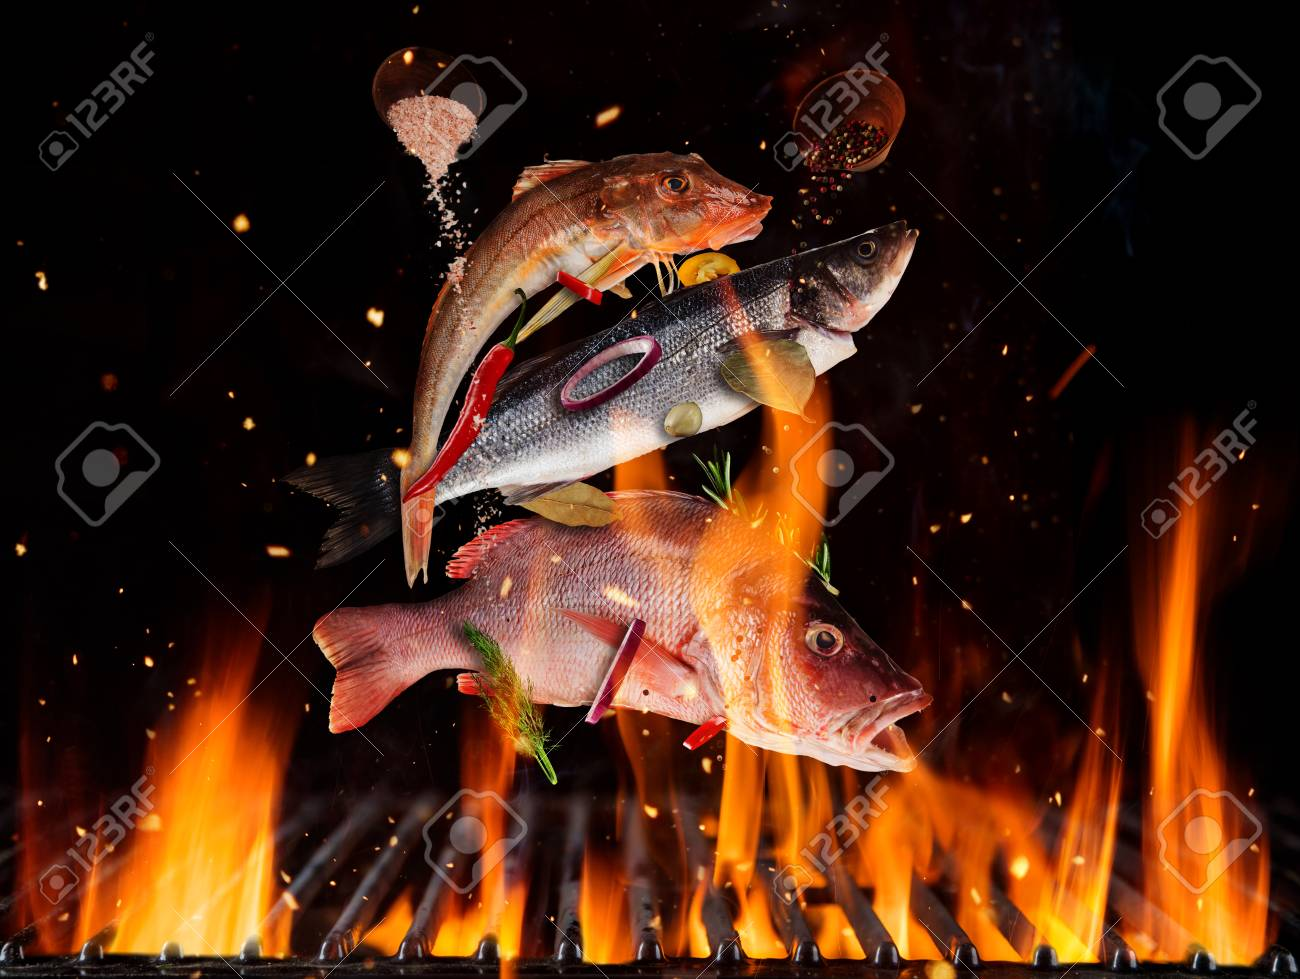 Flying sea fish above burning grill grid, isolated on black backround. Barbecue and grill concept - 120029773